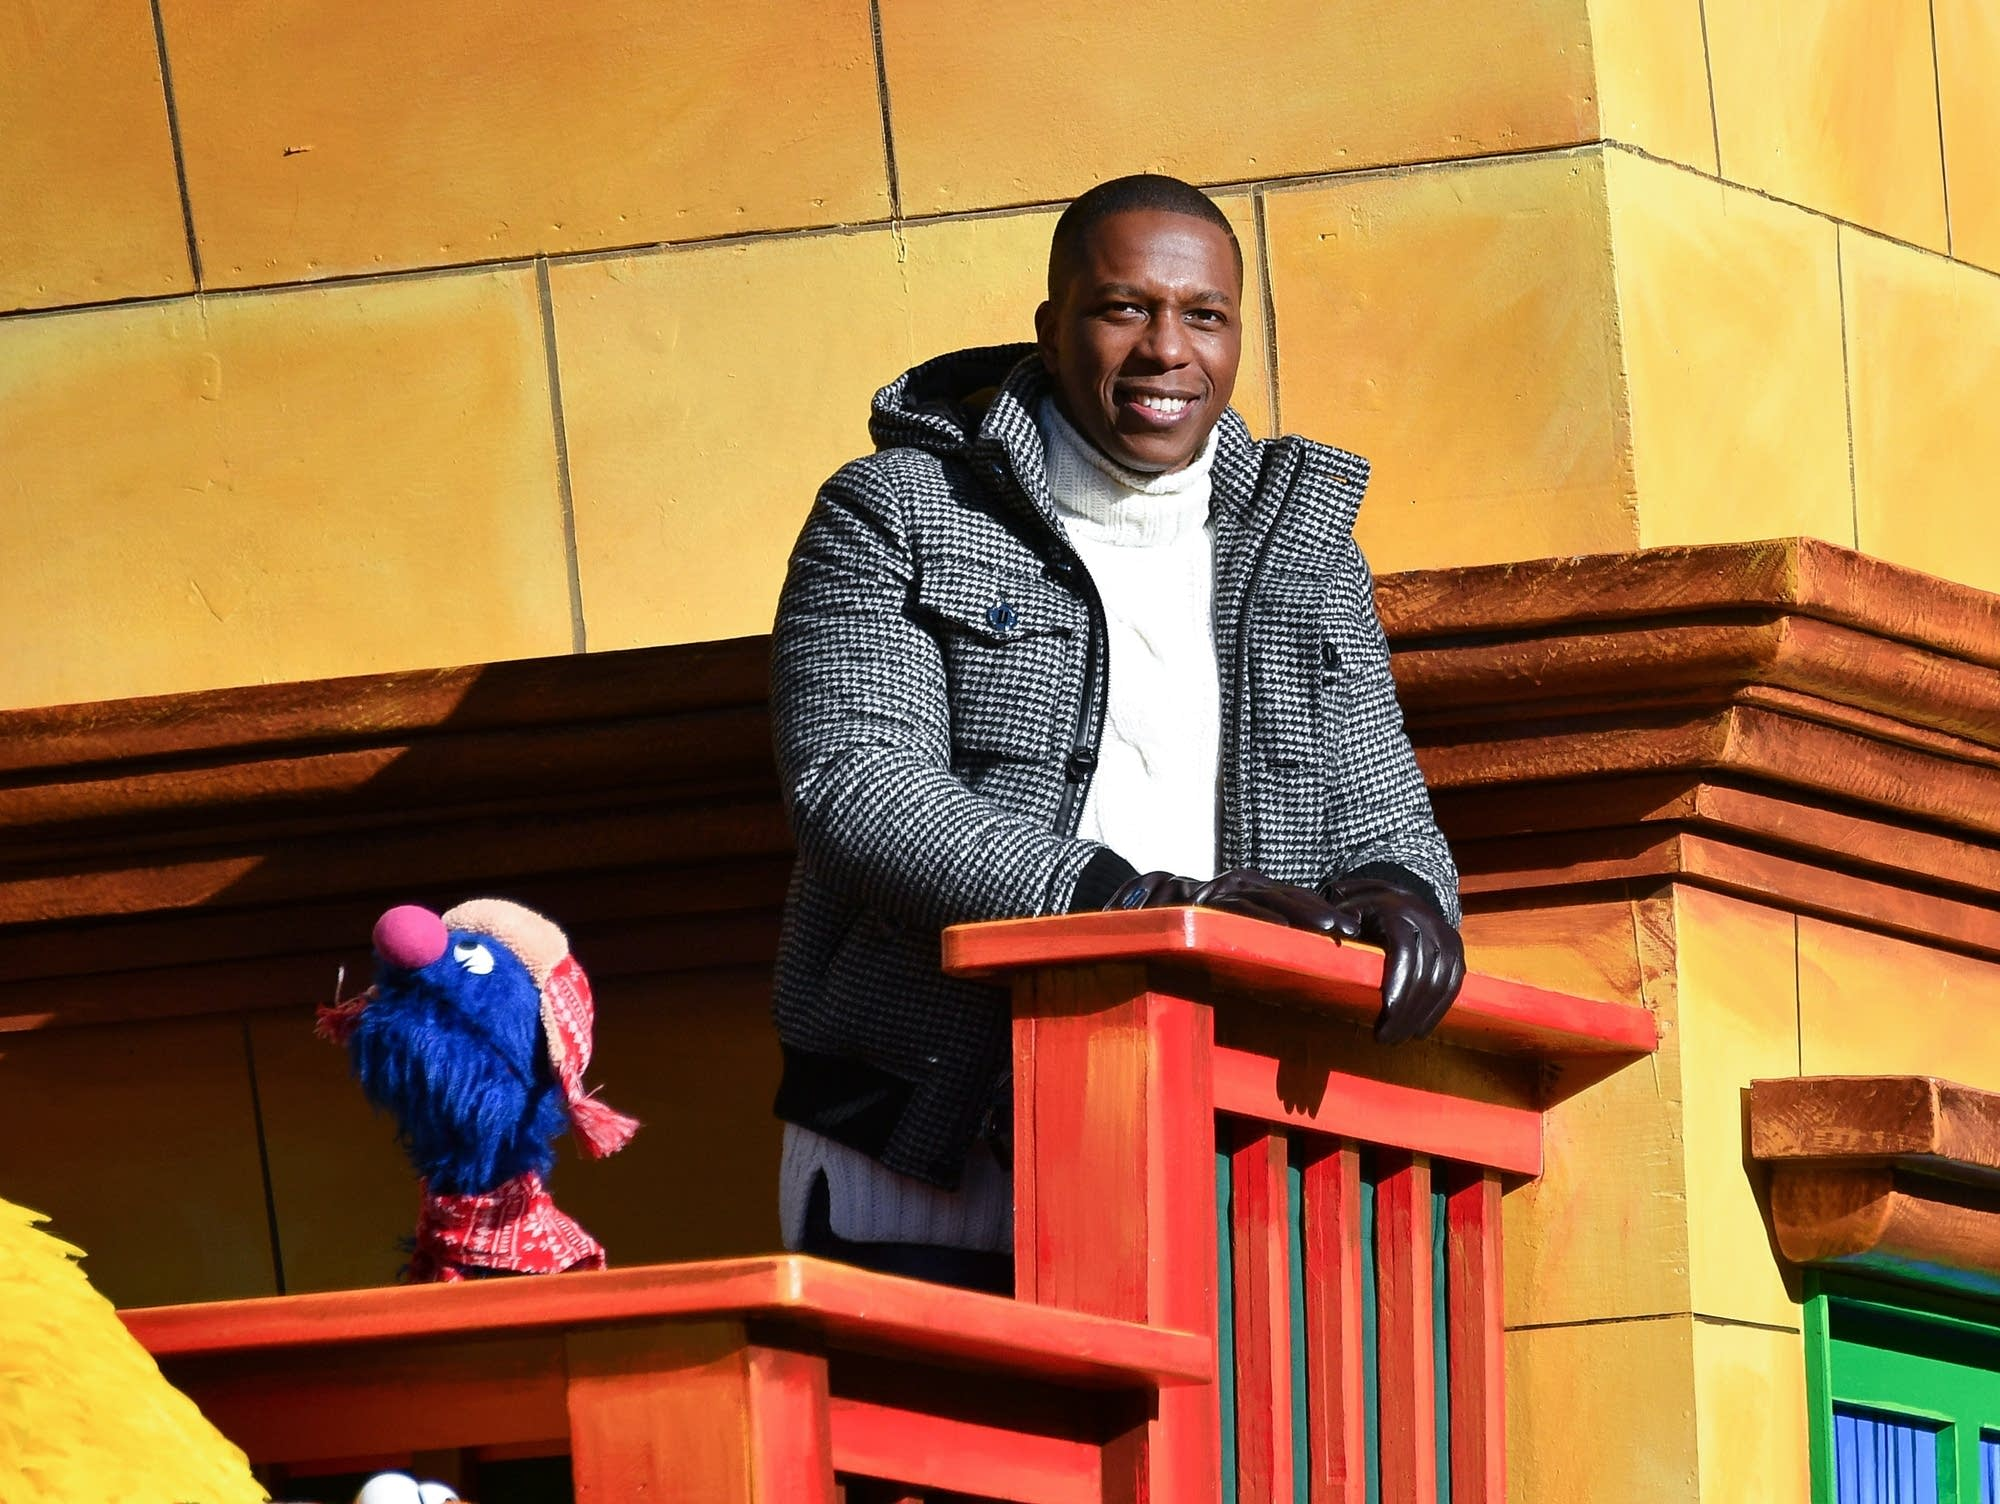 Leslie Odom Jr. in the Macy's Thanksgiving Day Parade.